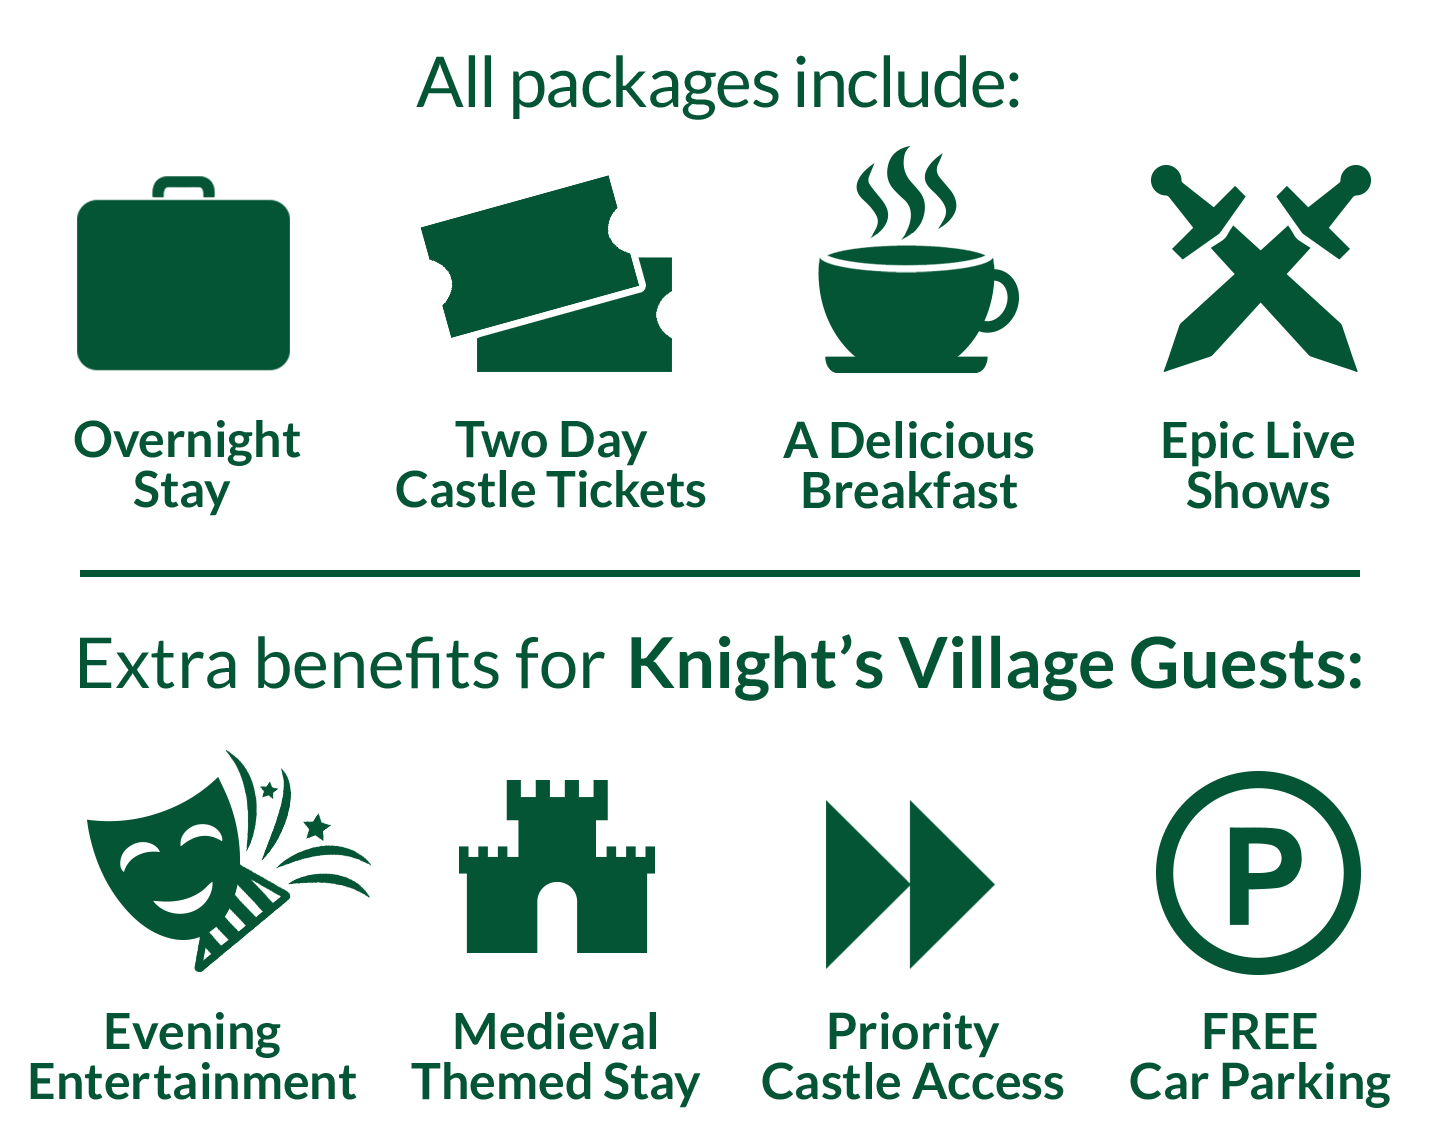 Warwick Castle Breaks packages include: Overnight stay, 2-day Castle tickets, breakfast, live shows. Guests staying a the Castle also receive: evening entertainment, priority Castle access, free car parking.